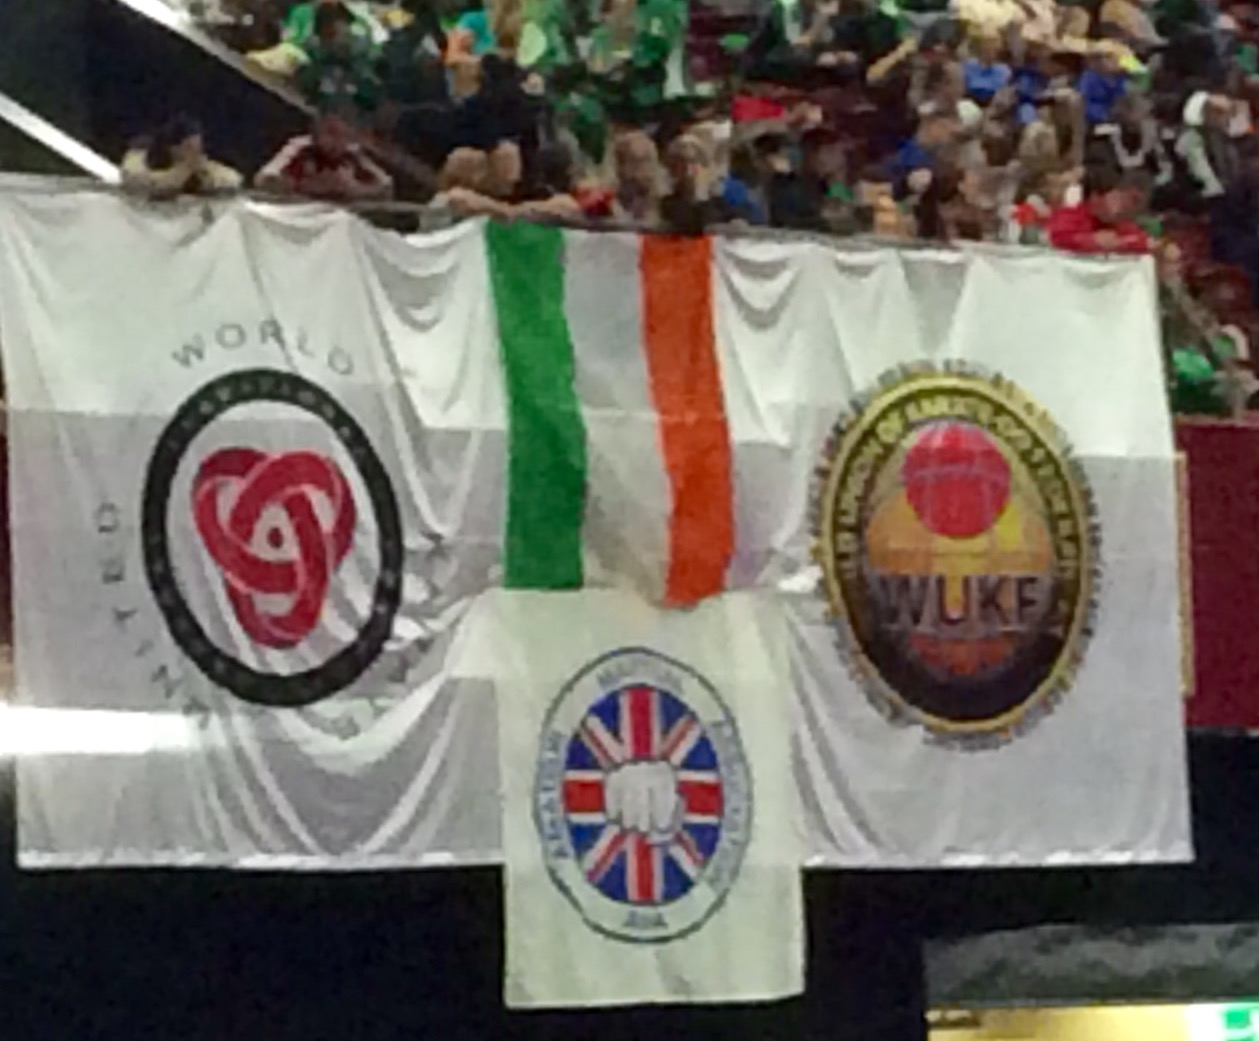 World Karate Championships in Ireland